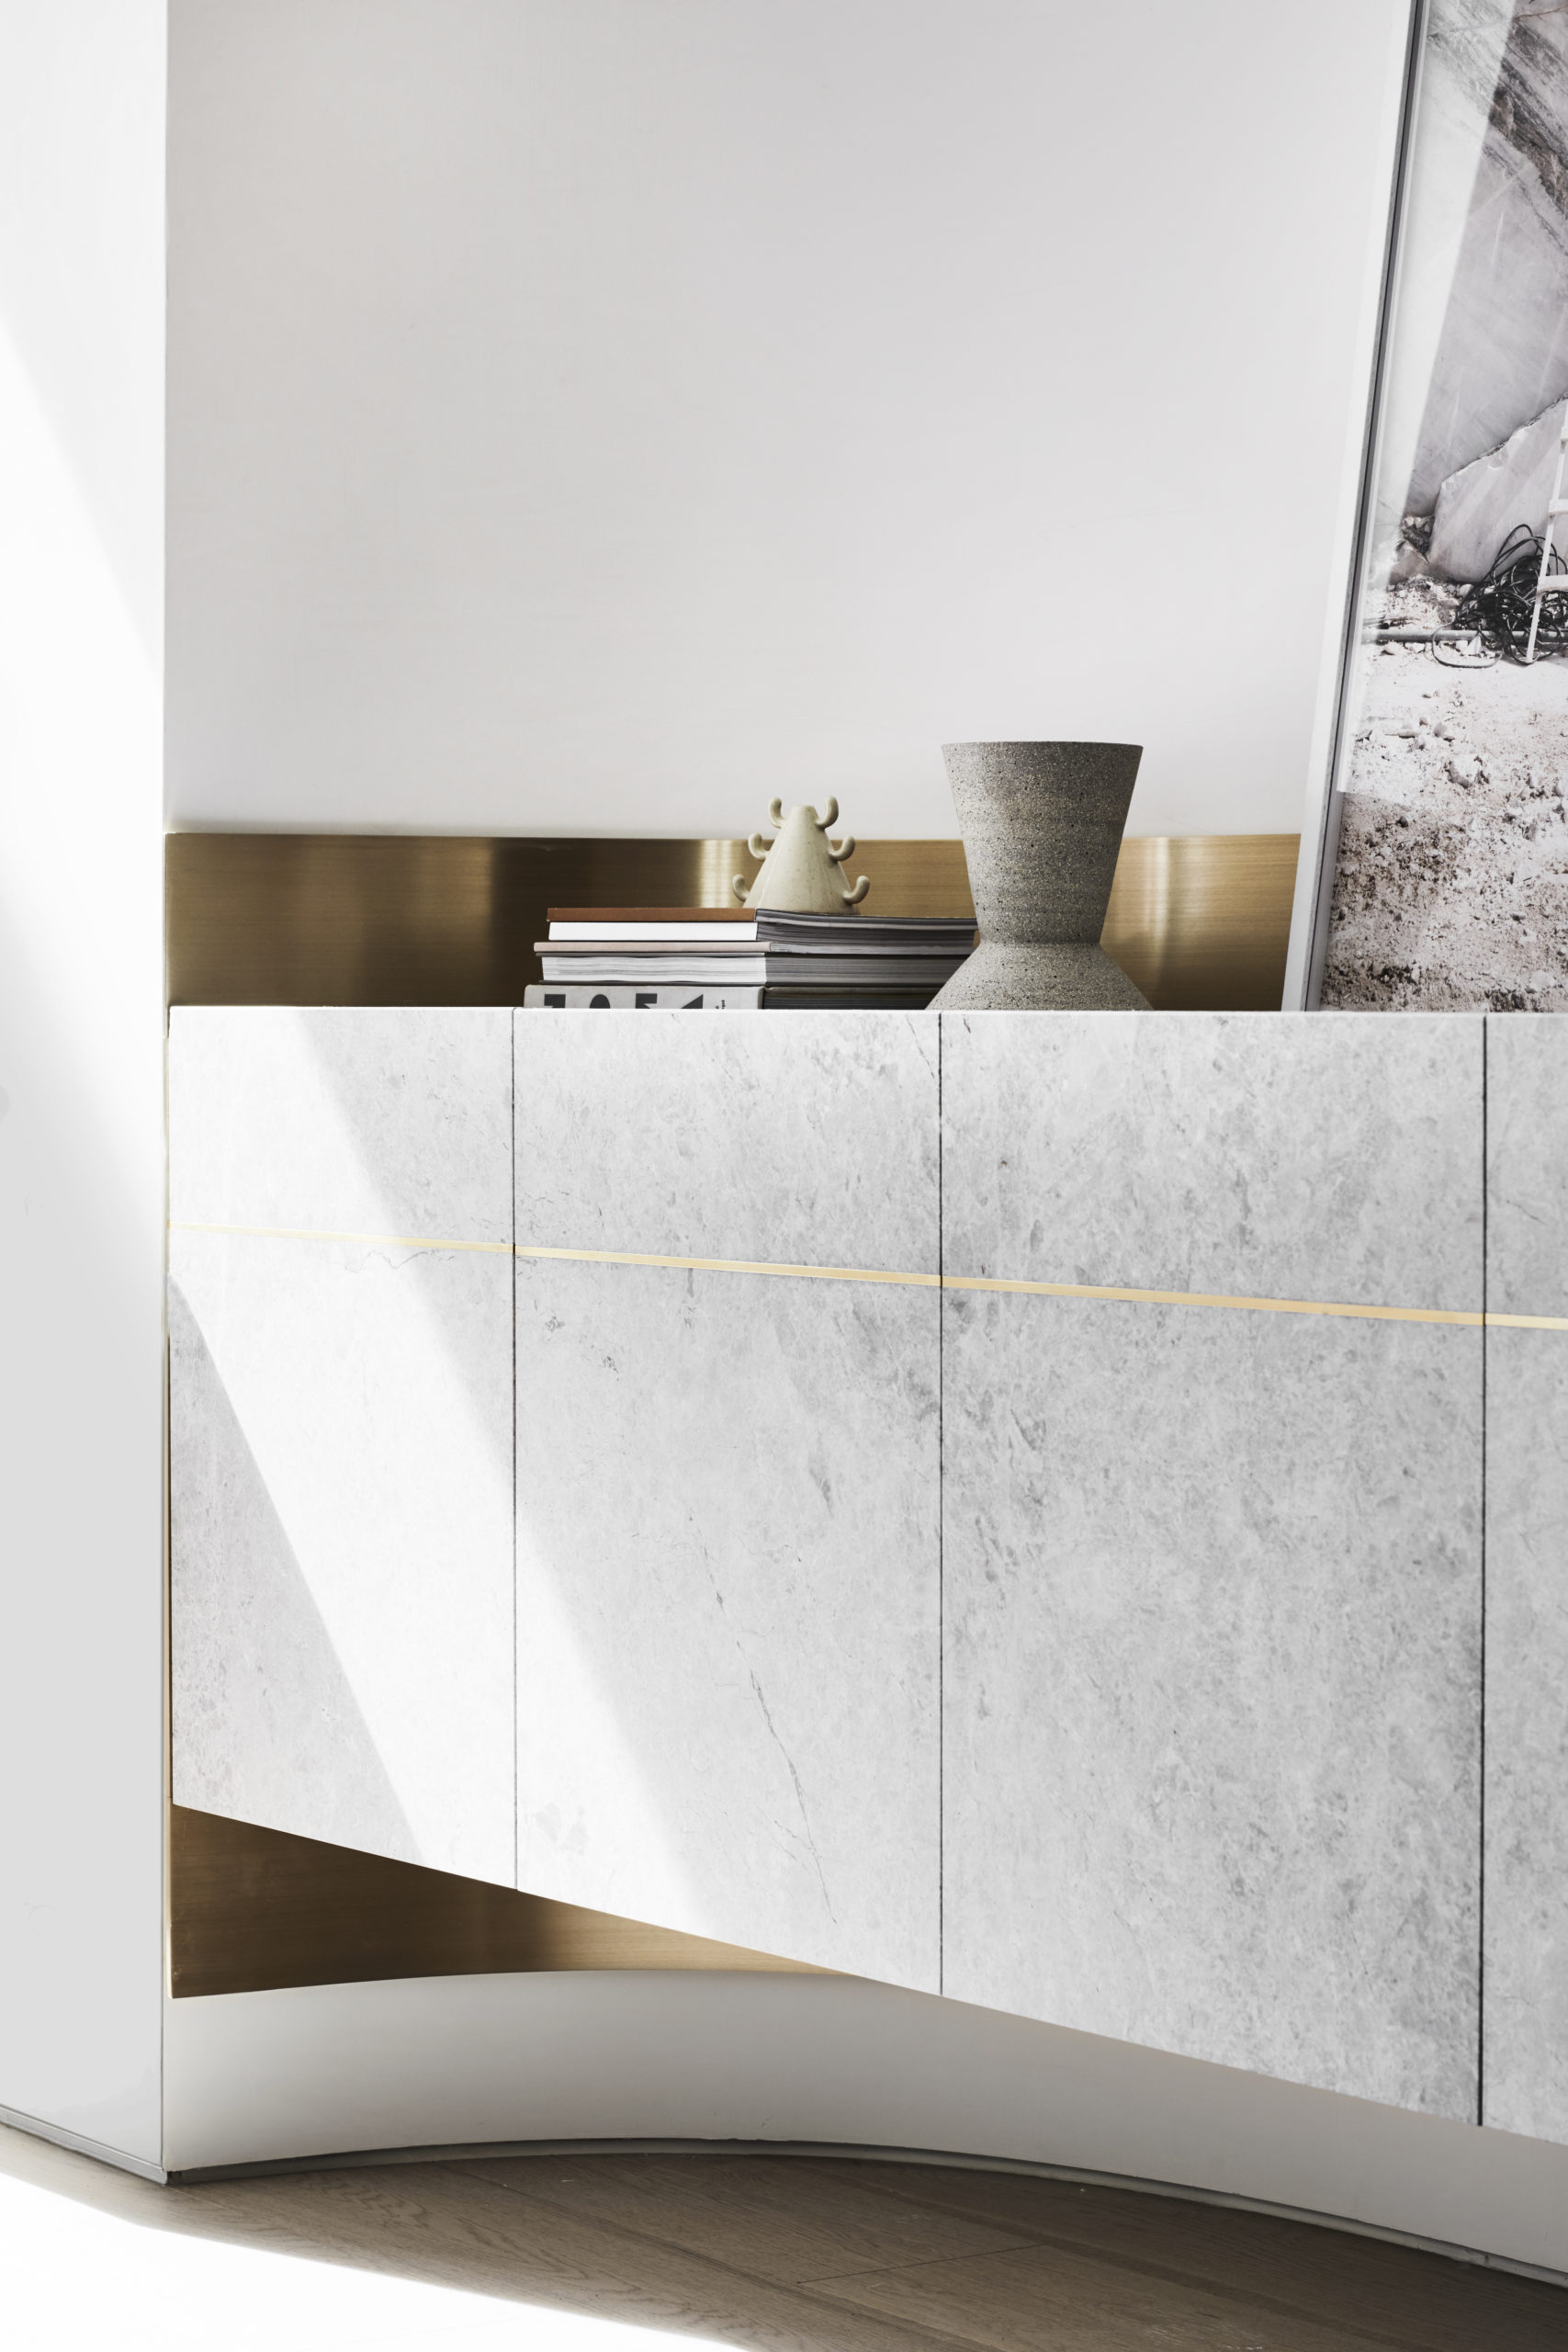 est living sussex street apartments mim design powell and glenn 3 scaled